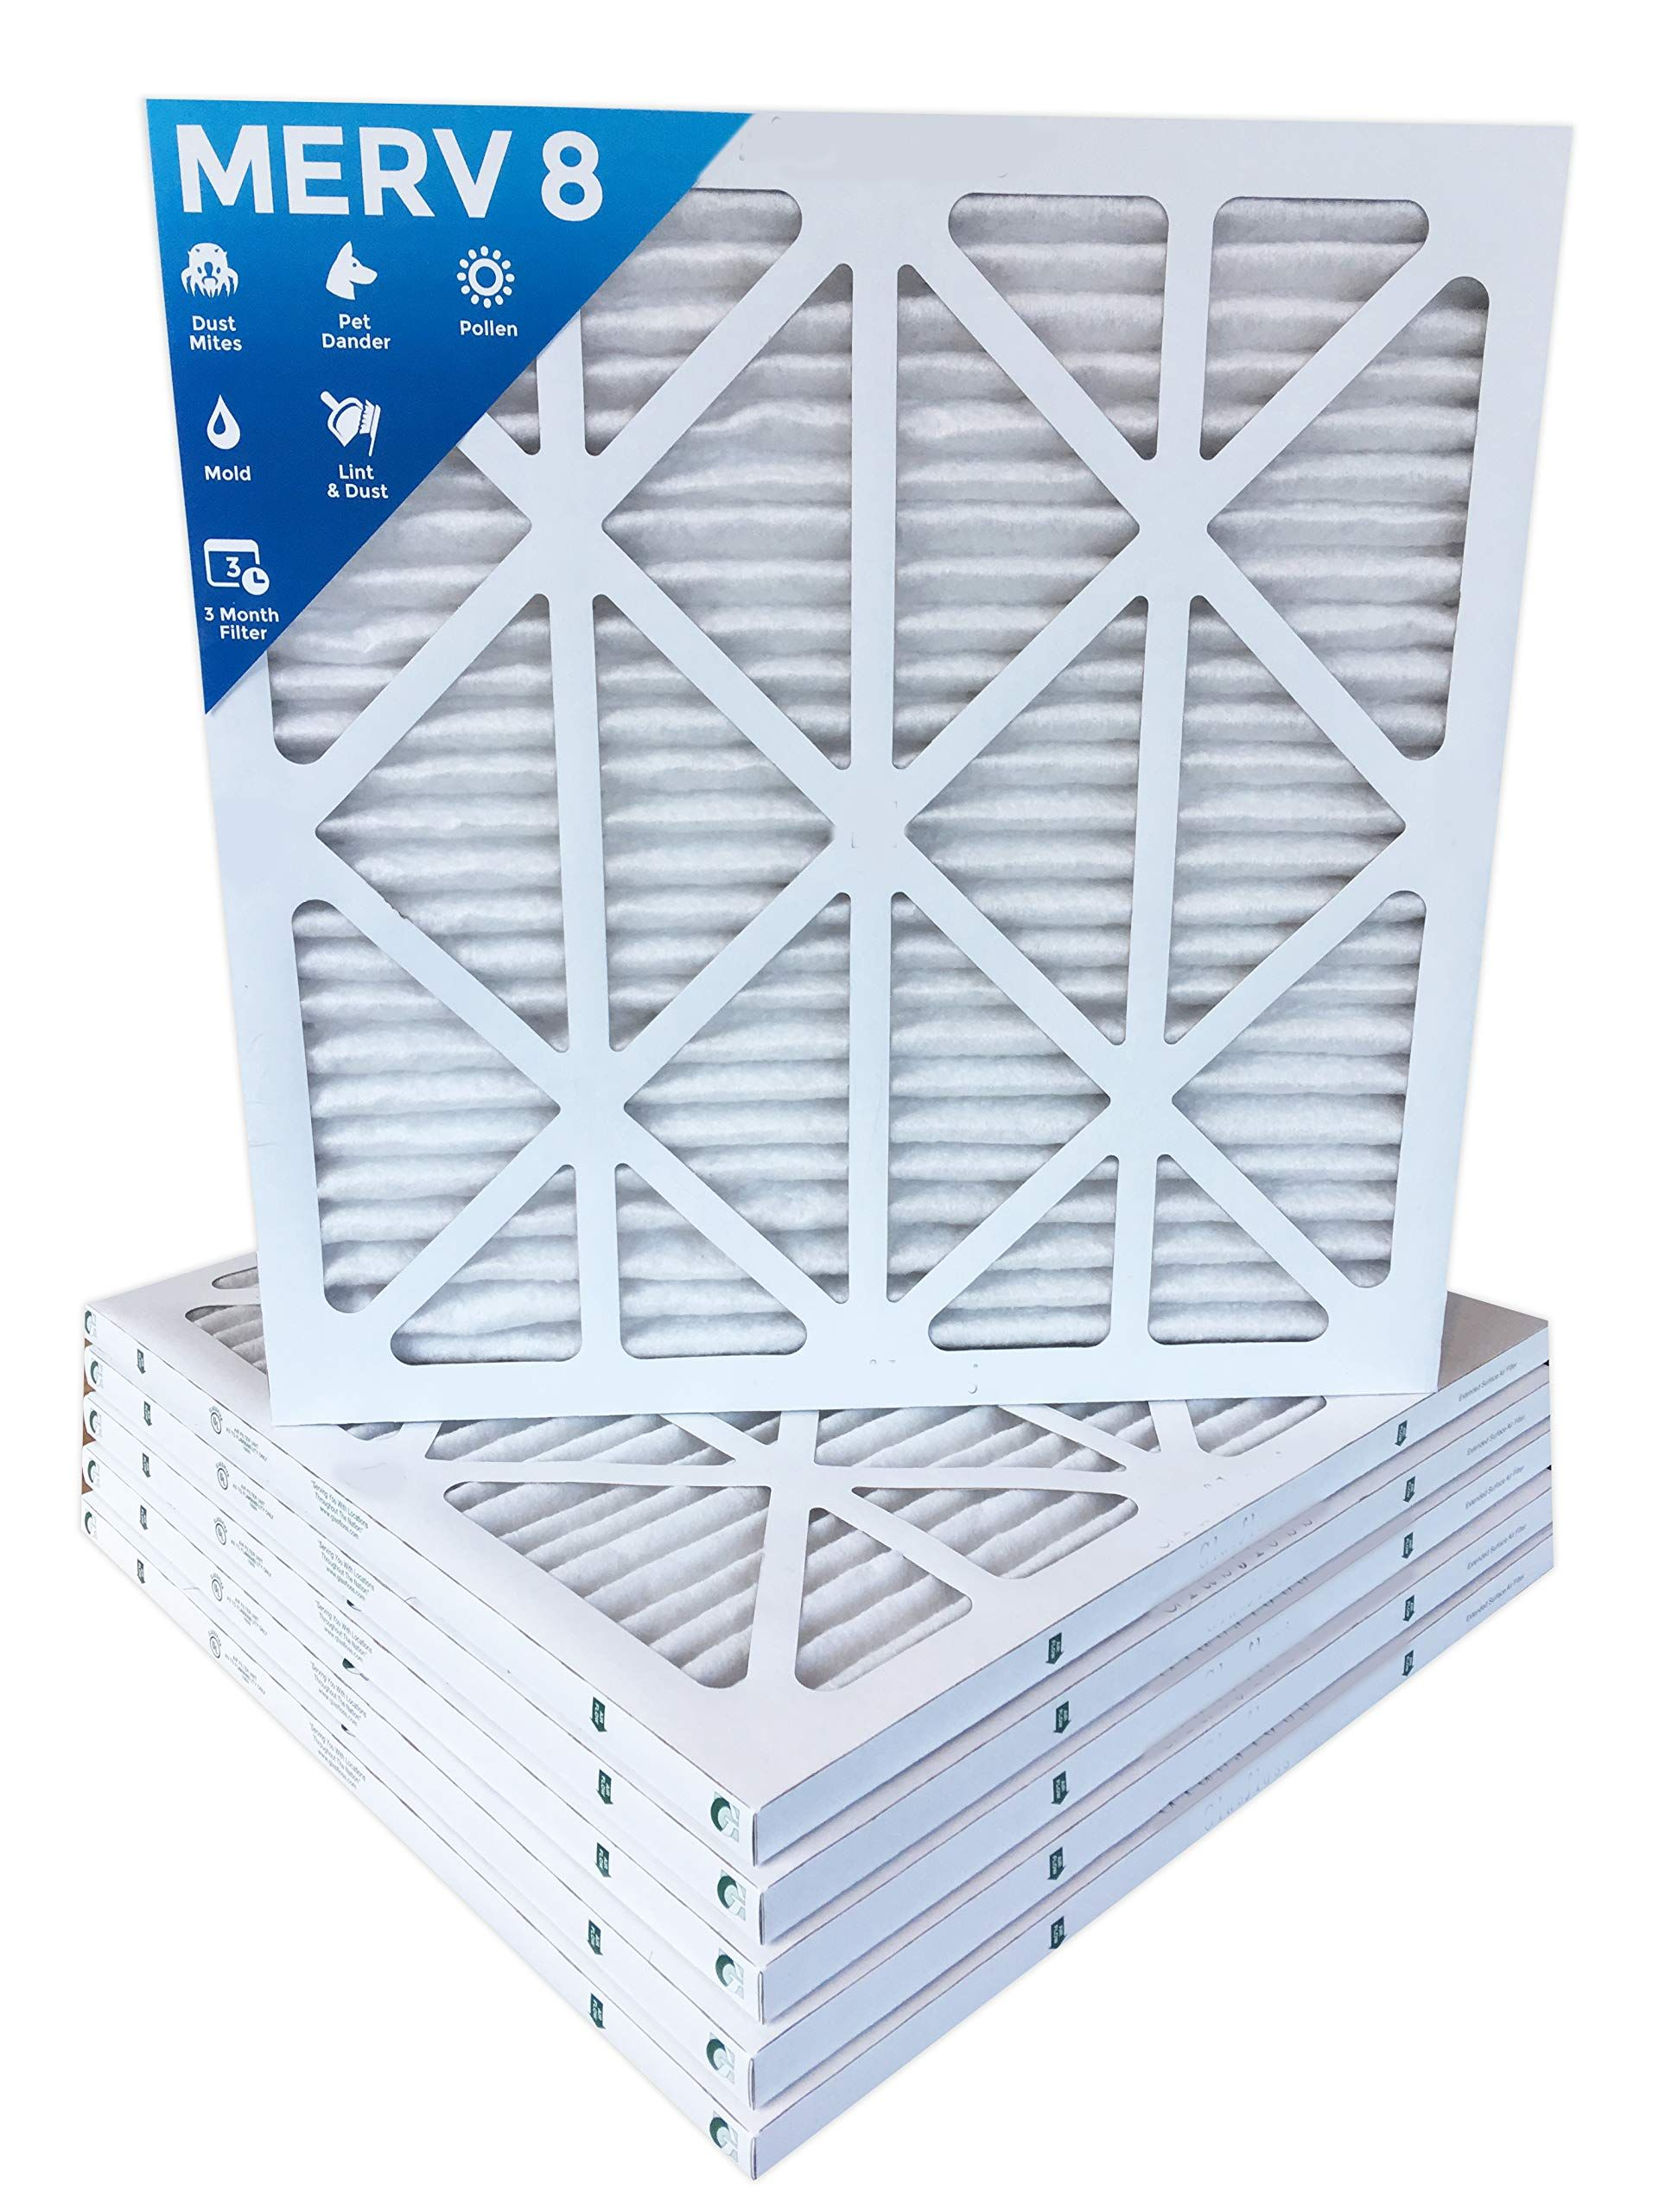 20x20x1 MERV 8 Pleated AC Furnace Air Filters. 12 PACK